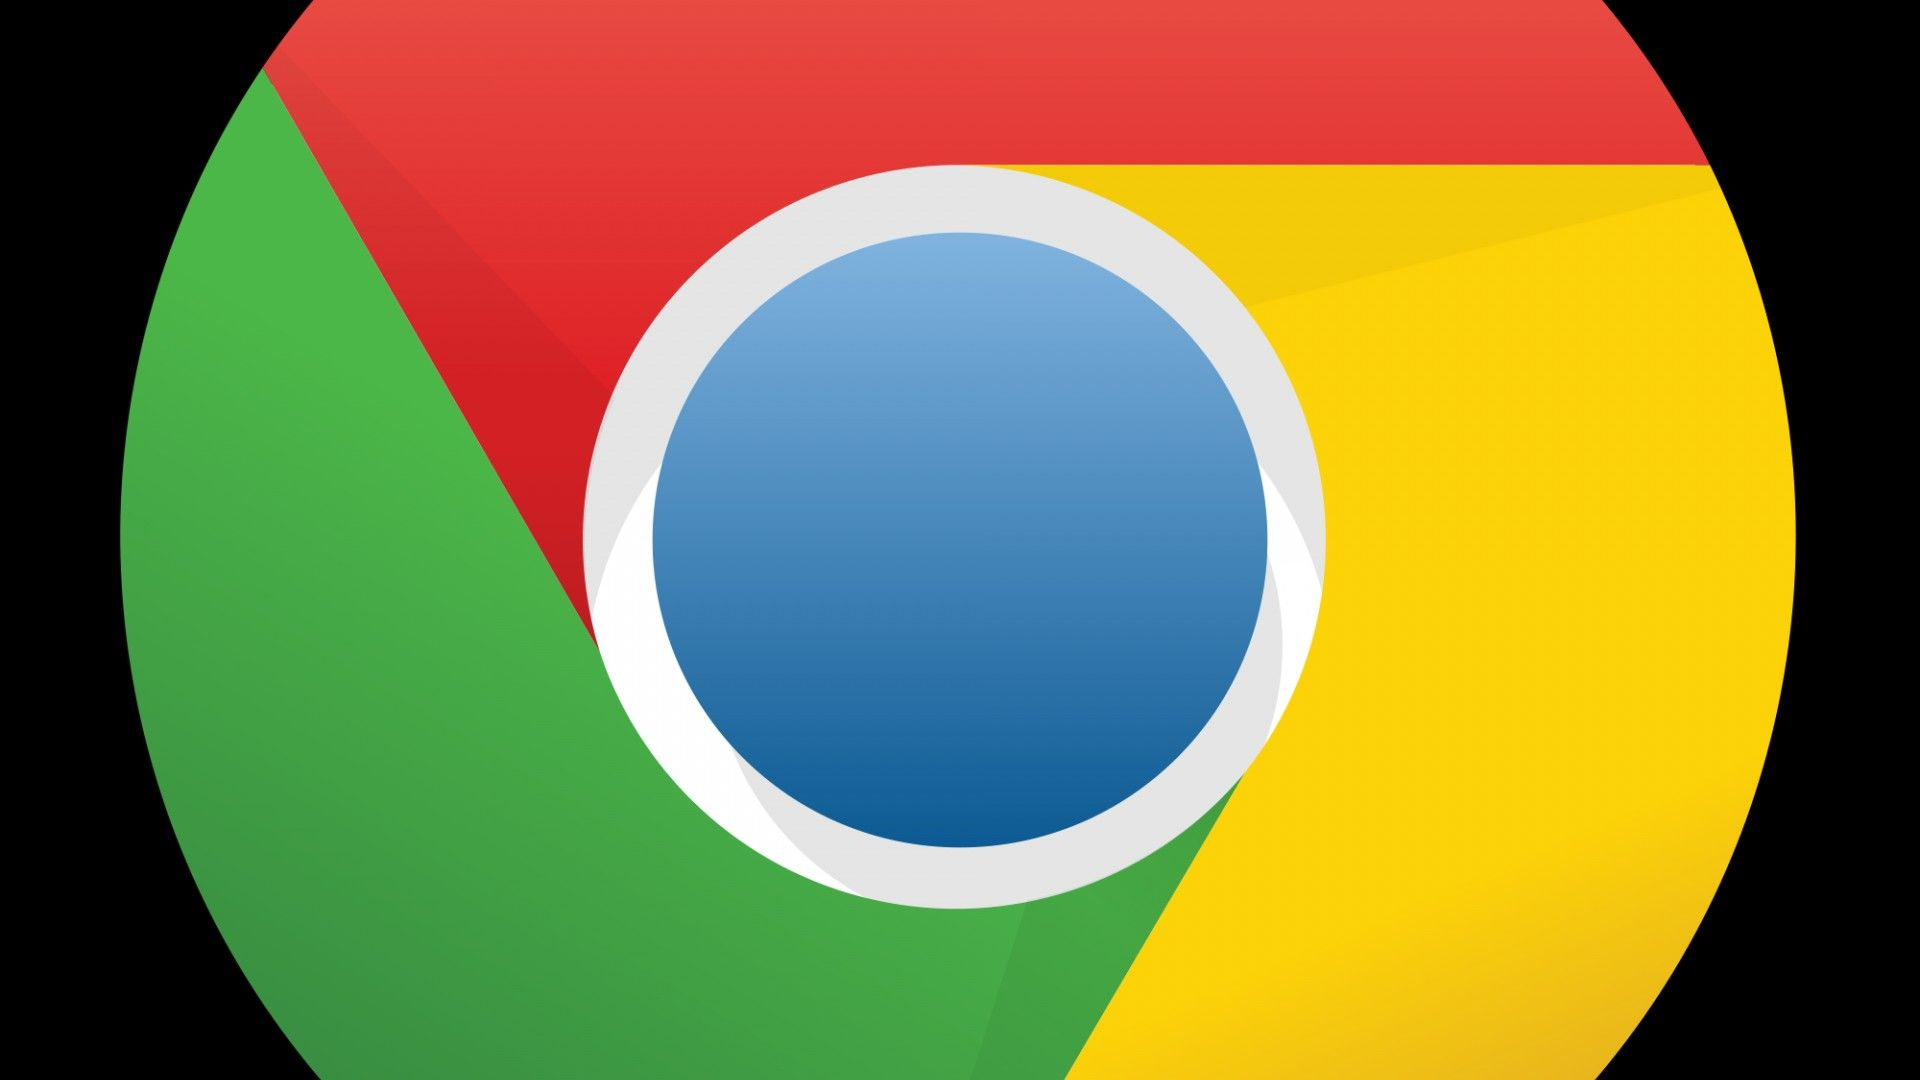 Google chrome themes quotes - Google Chrome Wallpapers Images